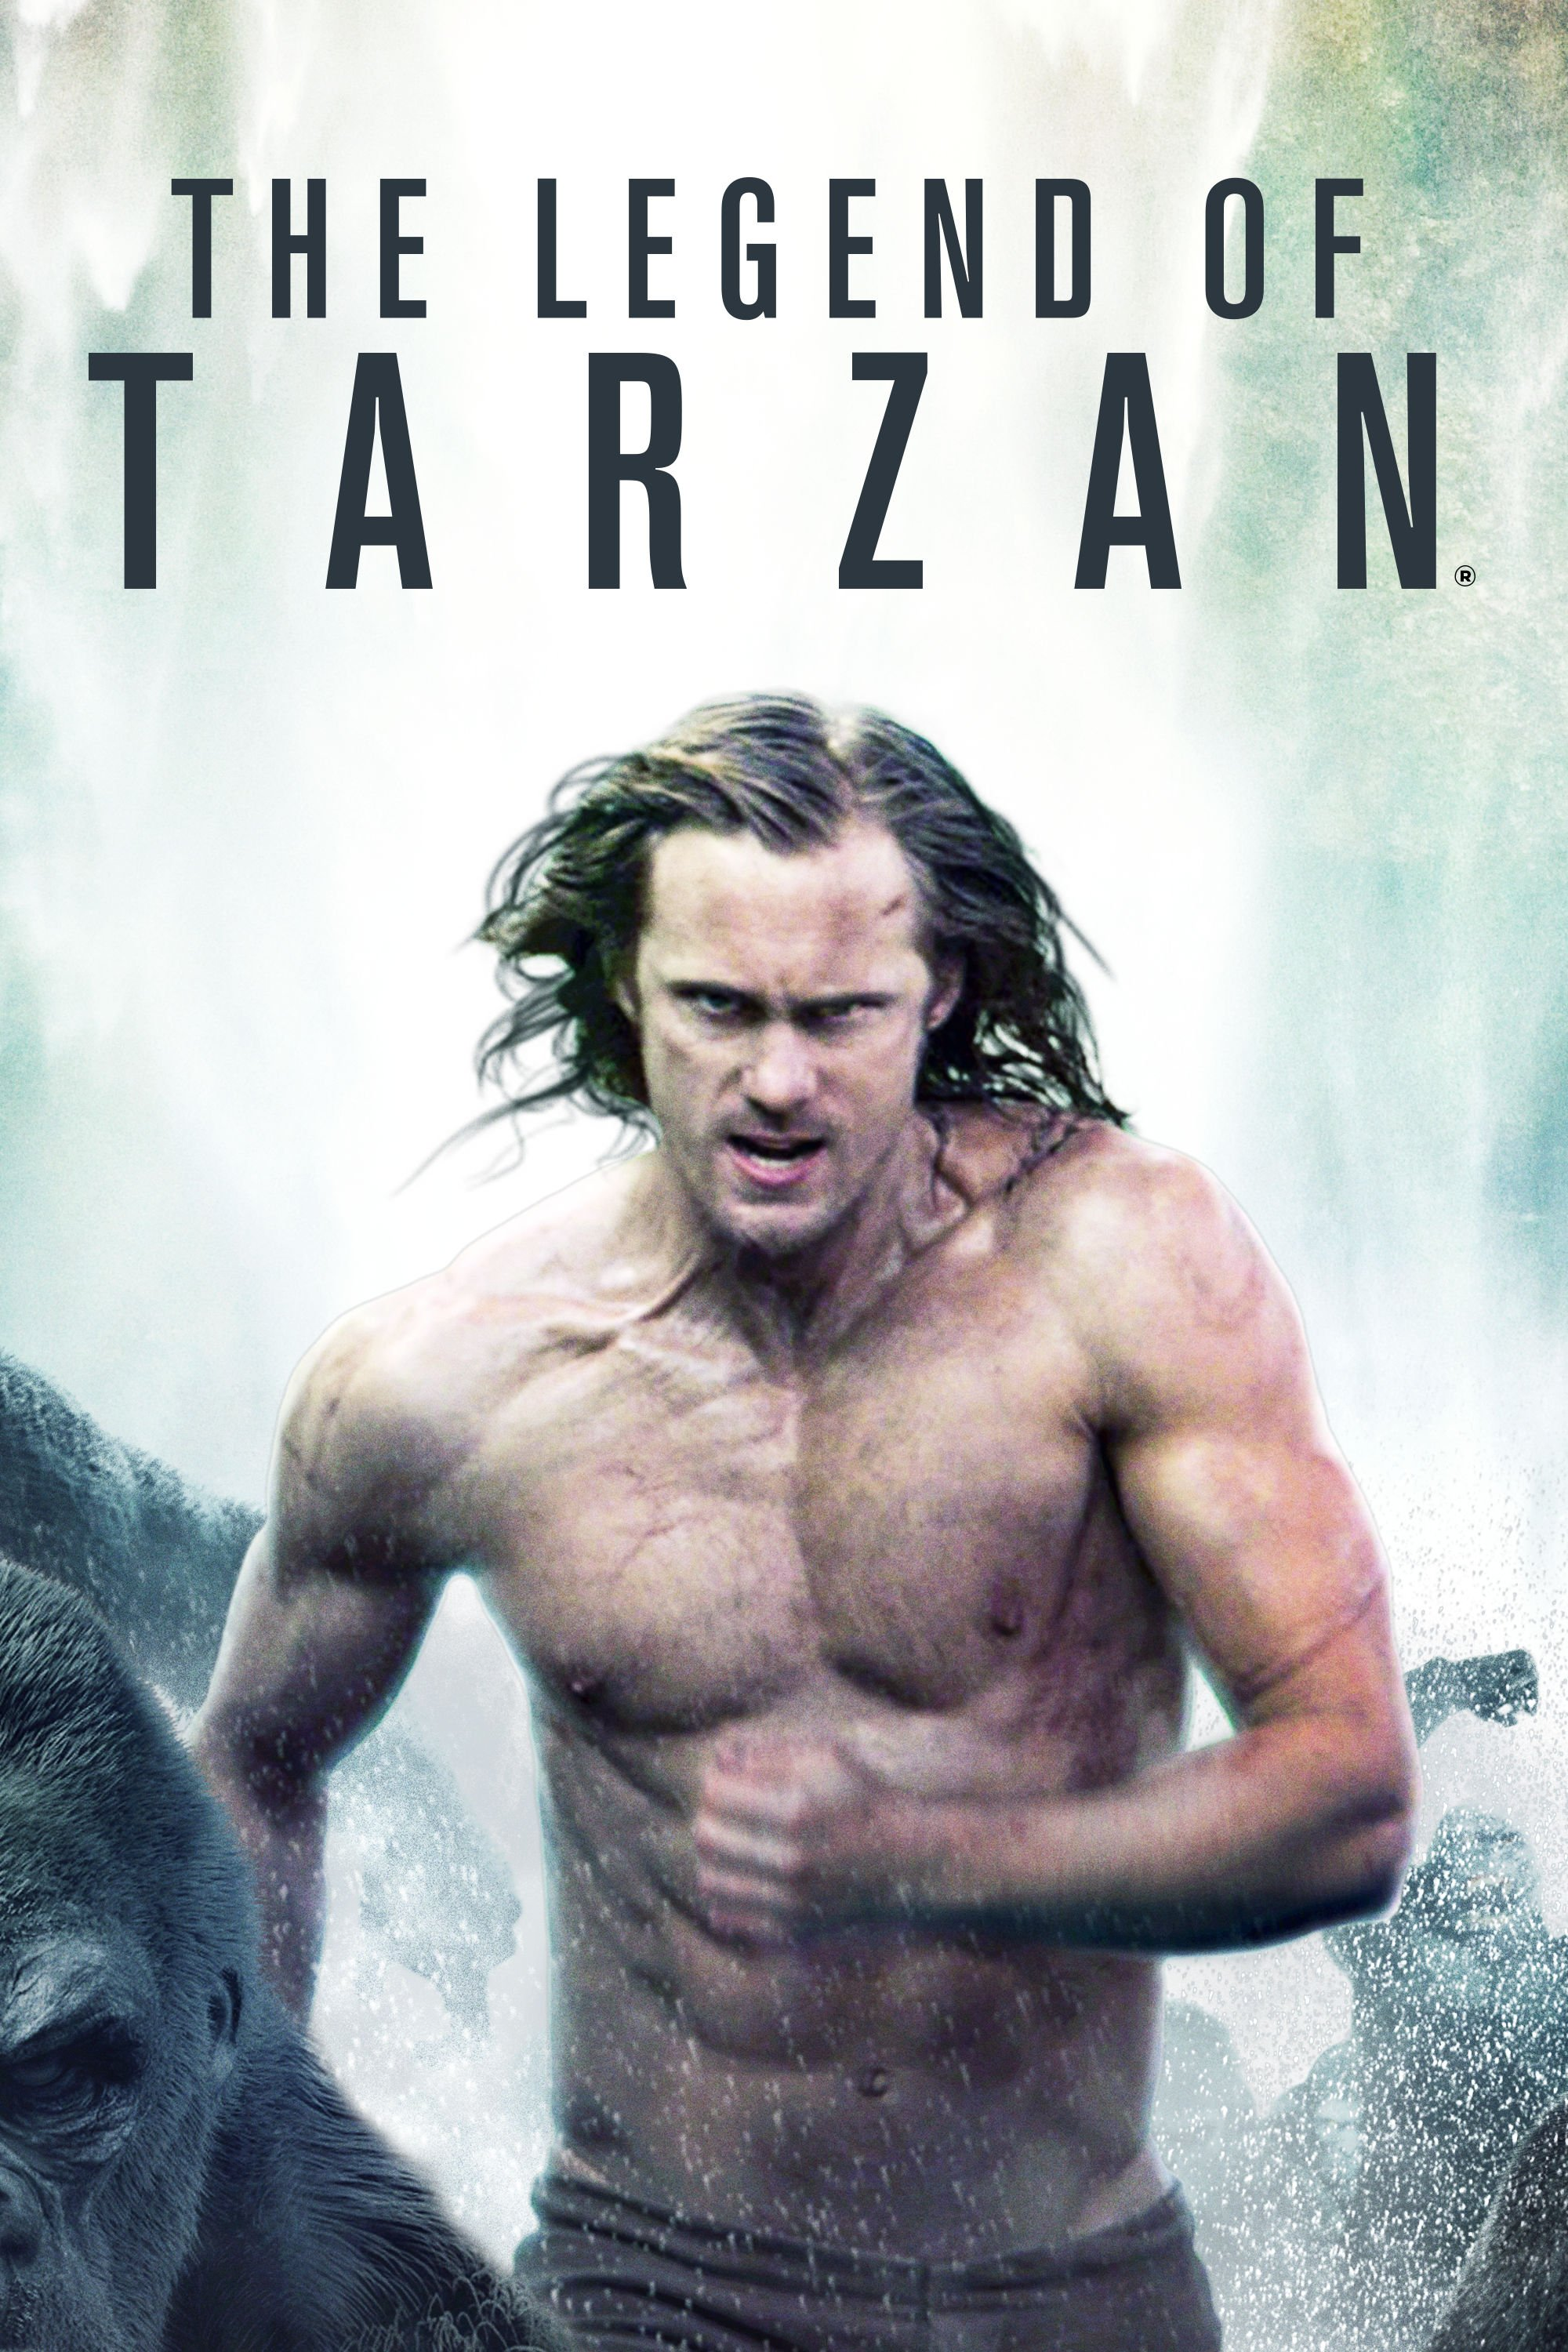 the-legend-of-tarzan-filming-locations-dvd-itunes-poster